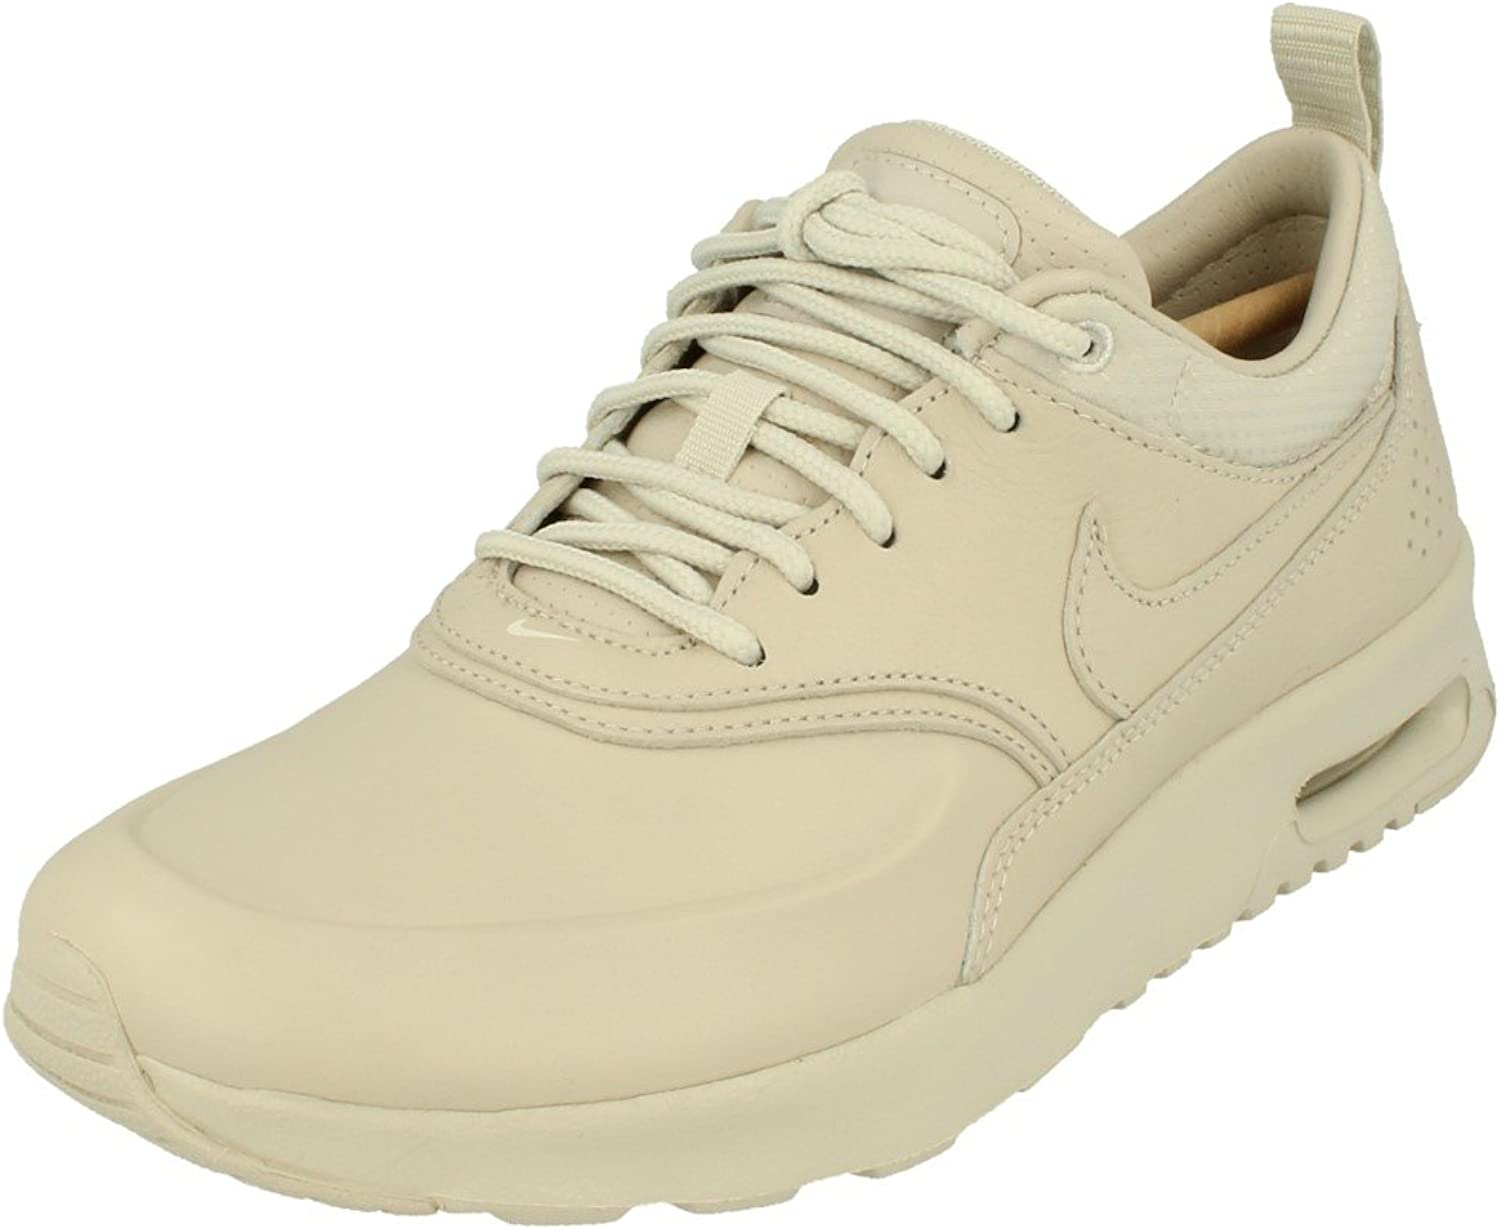 Nike Womens Air Max Thea Pinnacle Running Trainers 839611 Sneakers shoes